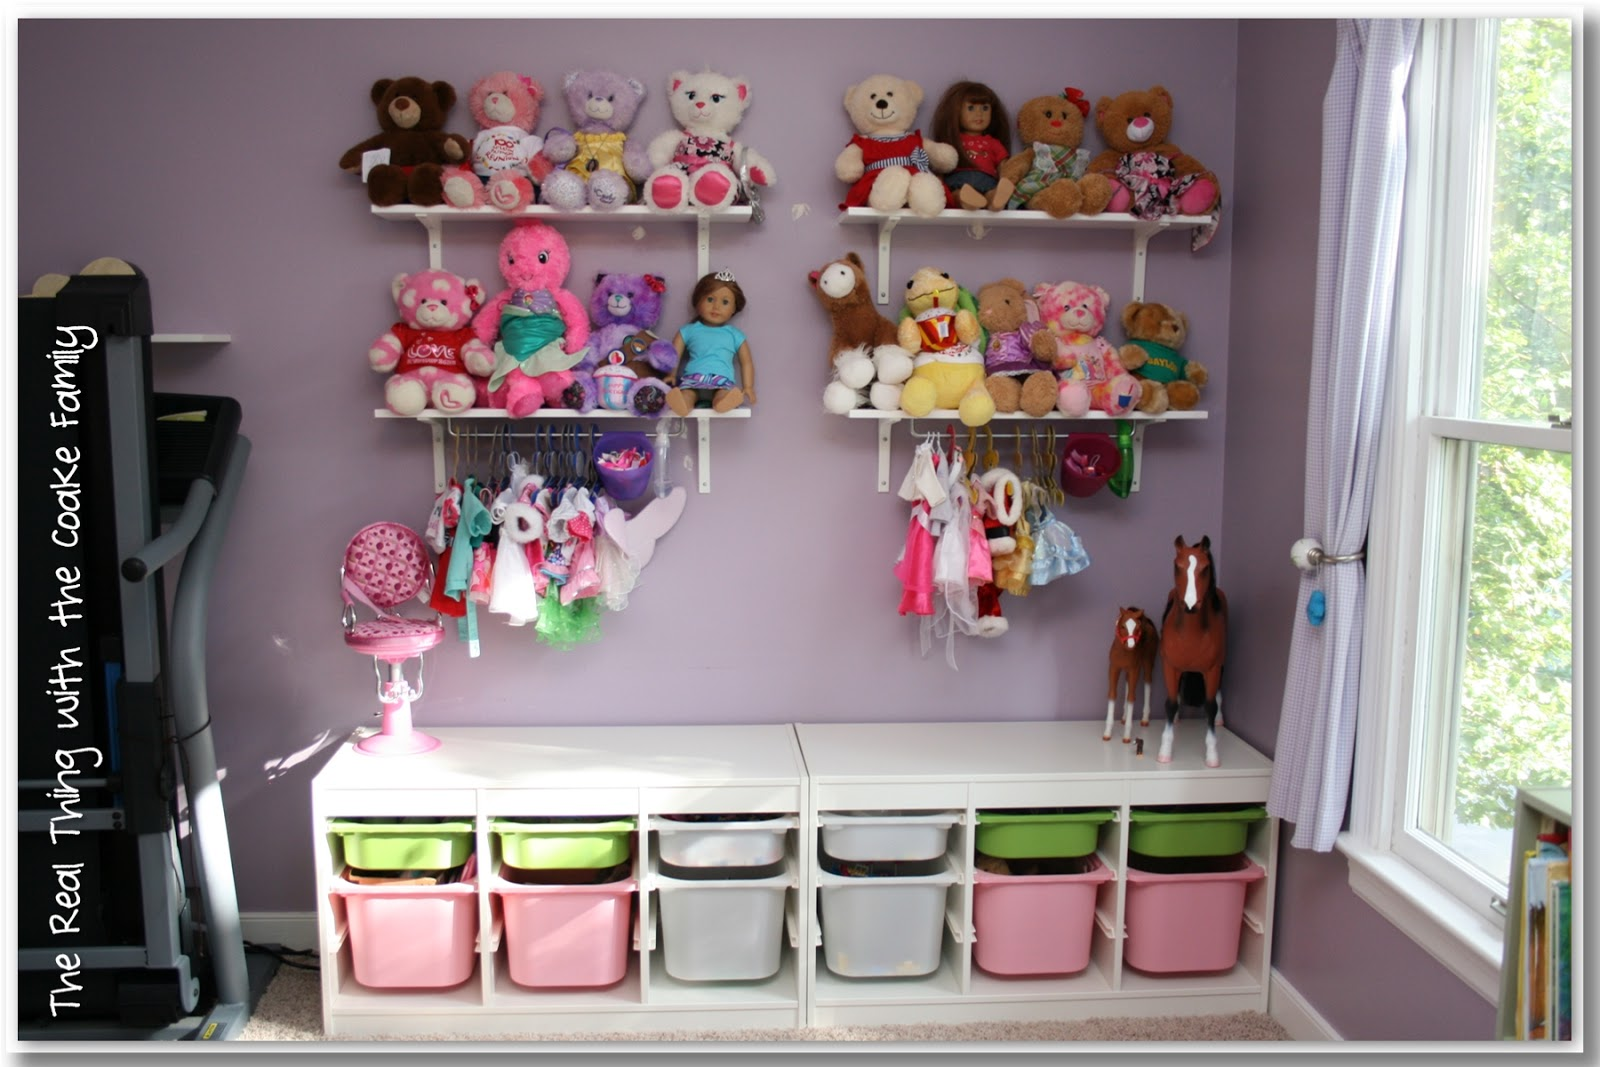 Toy Storage: Kid's Playroom Reorganization - The Real Thing with ...